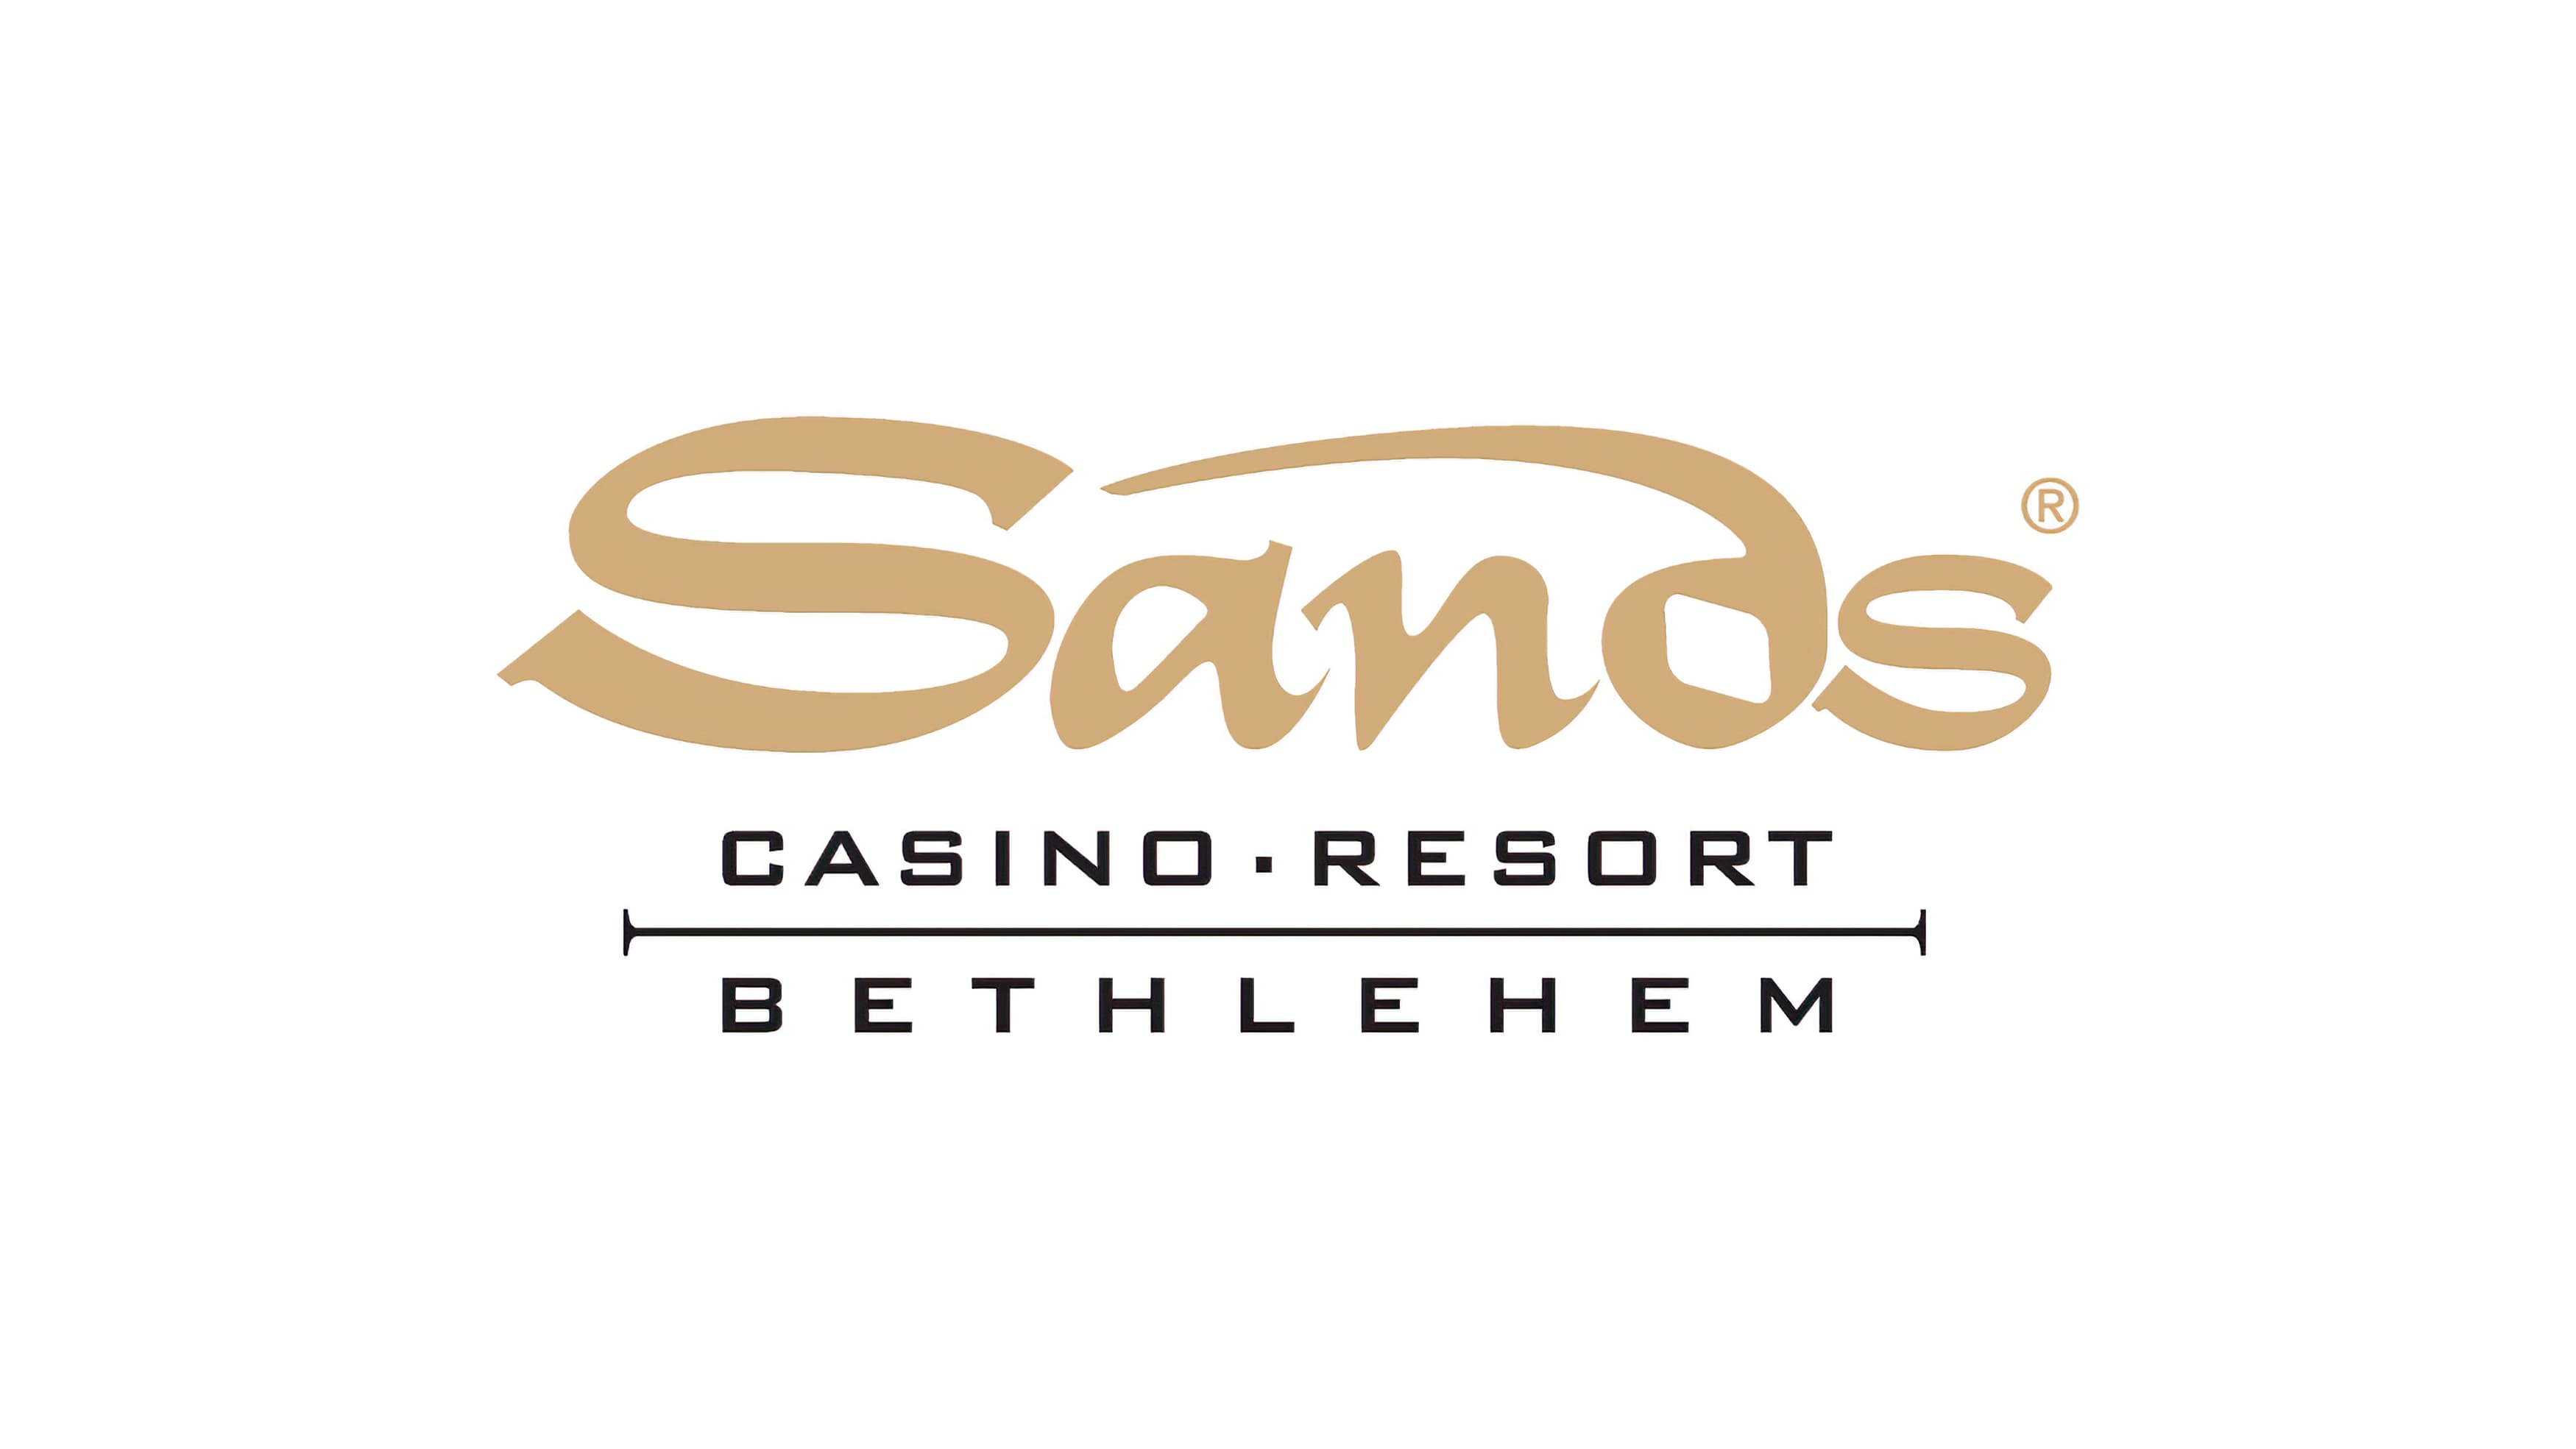 The design created for Sands Casino Resort featuring a golden colored brand logo